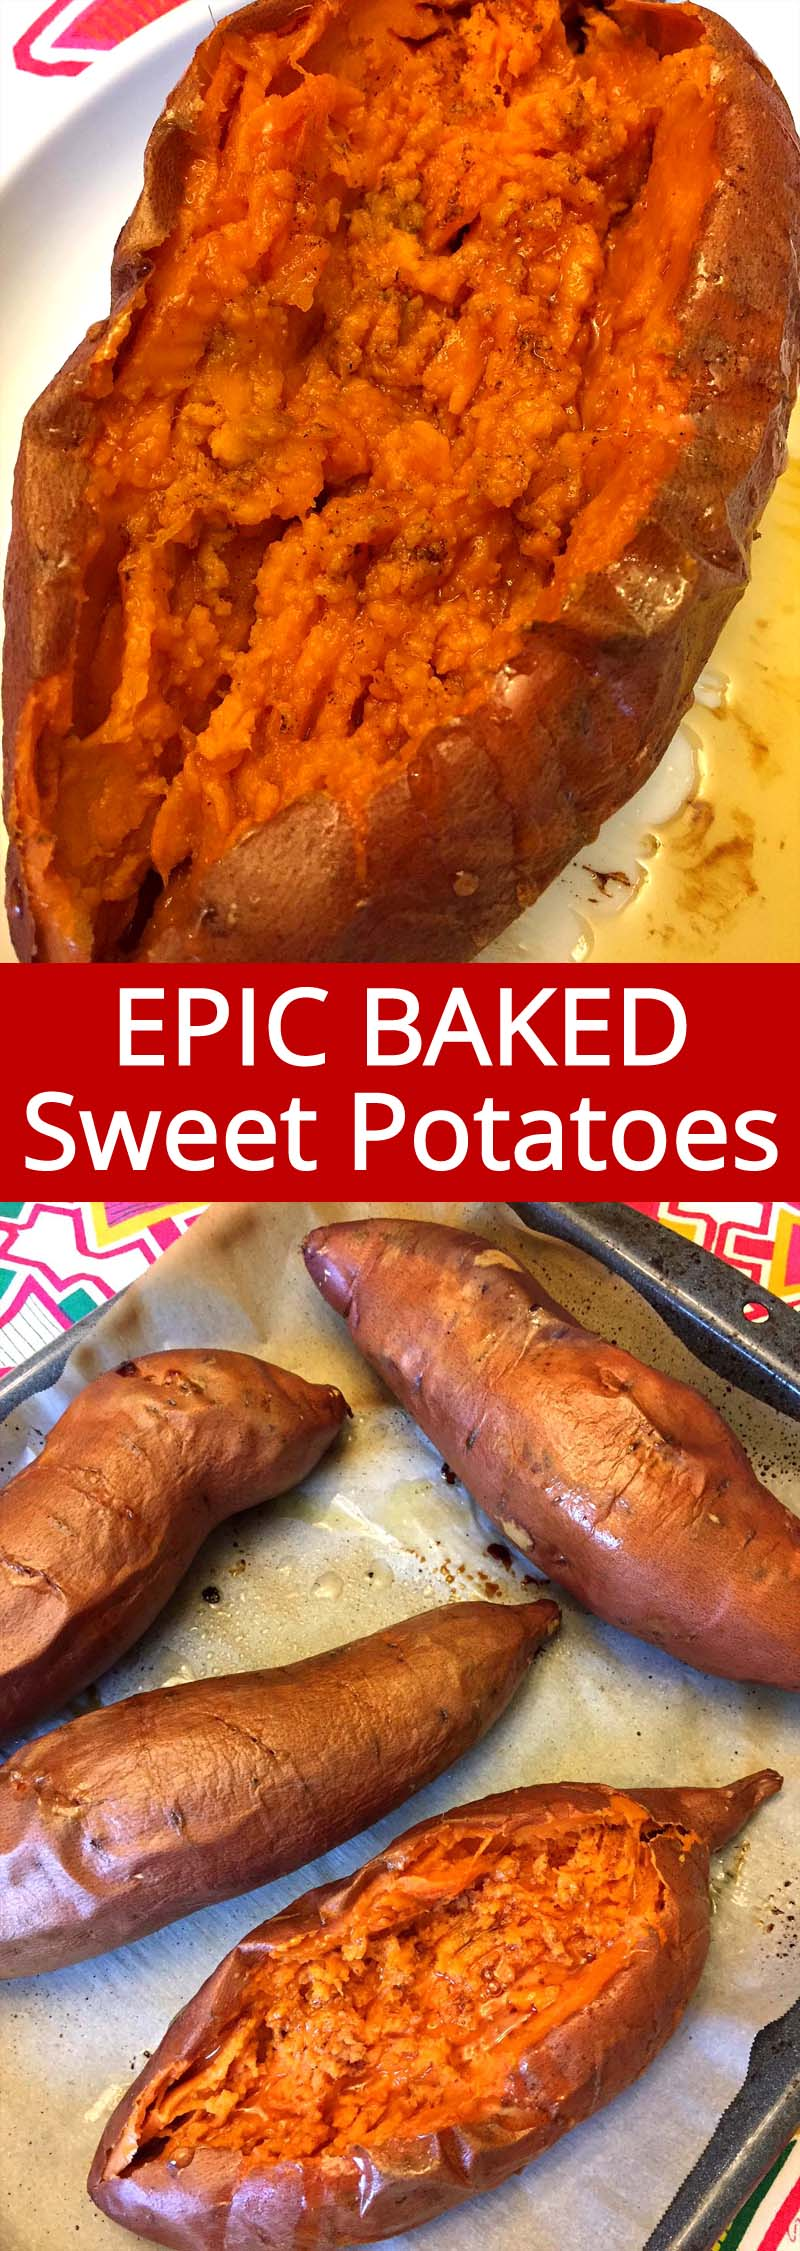 These perfect baked sweet potatoes are so easy to make and so delicious! Whole sweet potatoes are oven baked to perfection, they have such a soft creamy texture! Add some maple syrup and a dash of cinnamon, mmmm!